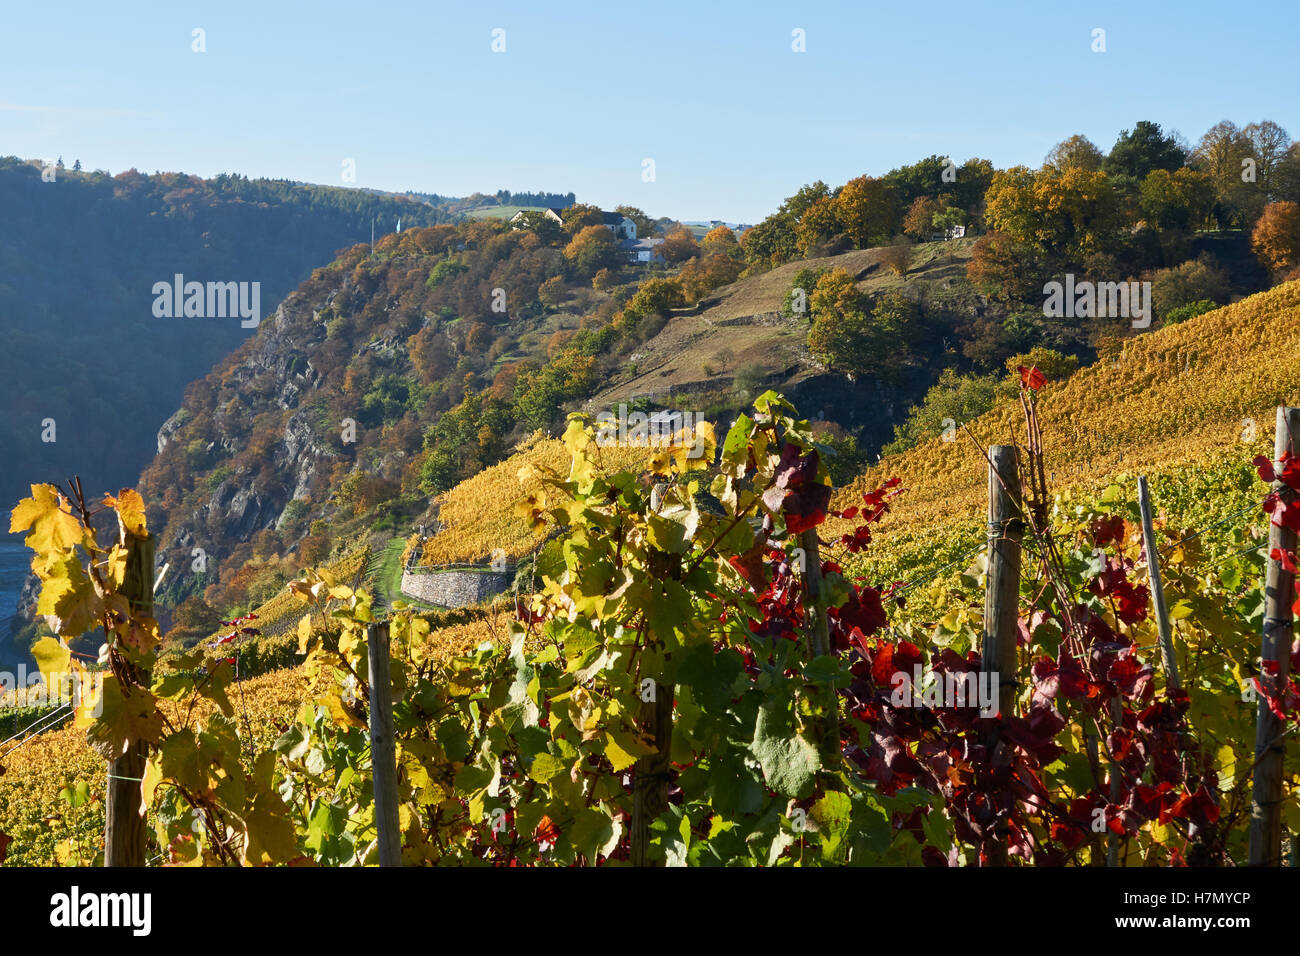 Loreley and vineyards at Rhine valley, Germany. Stock Photo